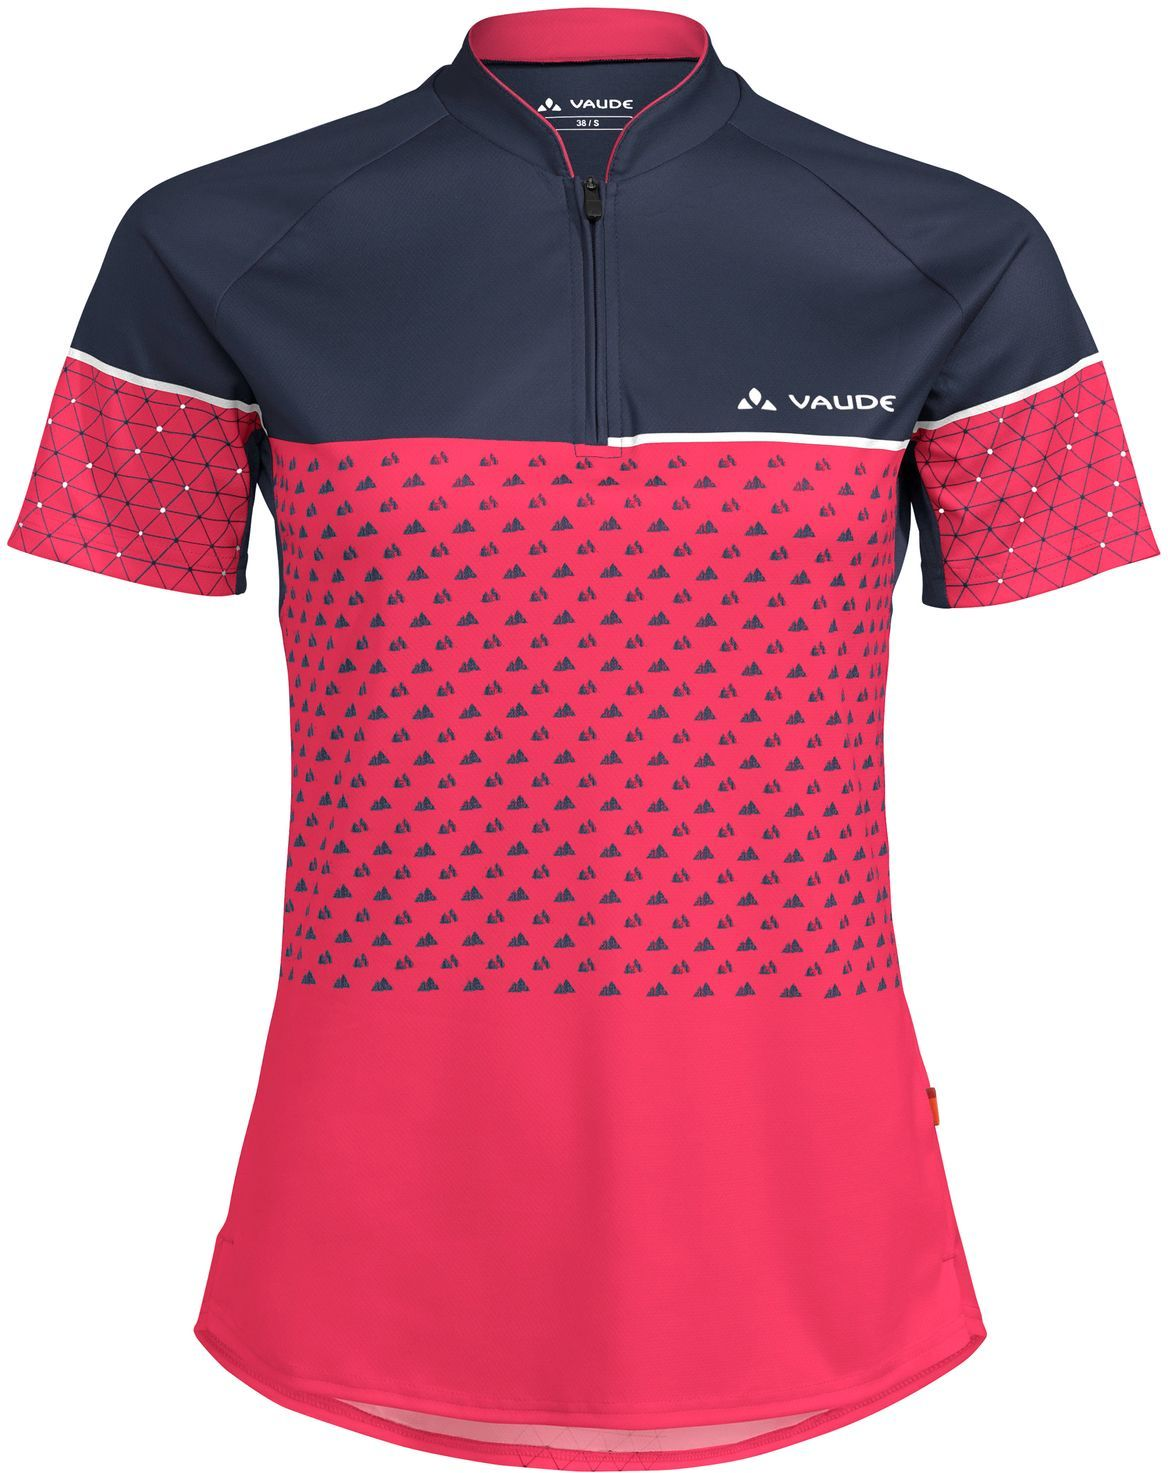 Vaude Women's Ligure Shirt II - eclipse S